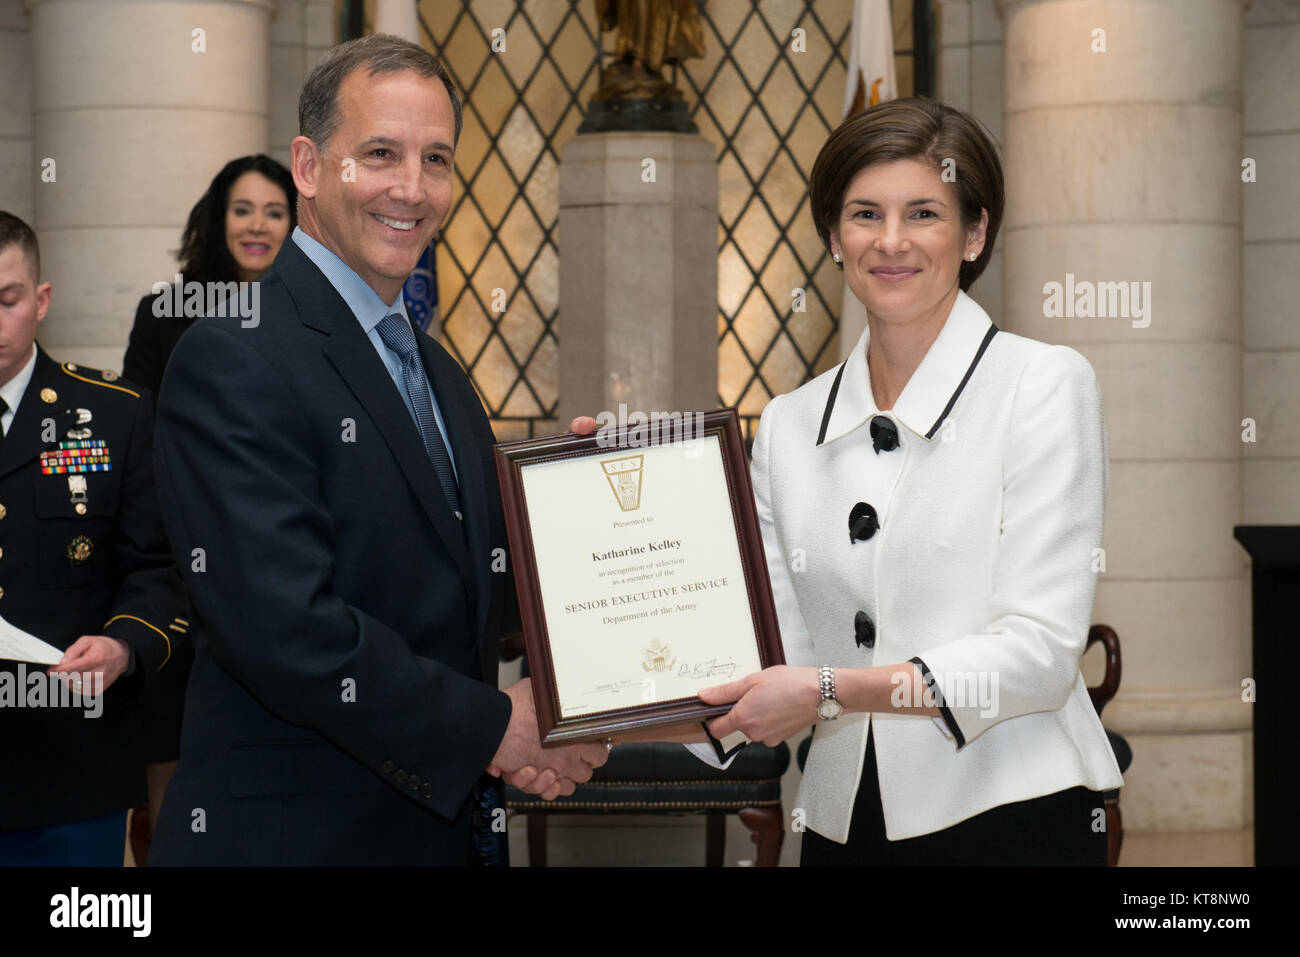 Katharine Kelley, right, superintendent, Arlington National Cemetery, receives the Senior Executive Service certificate - Stock Image